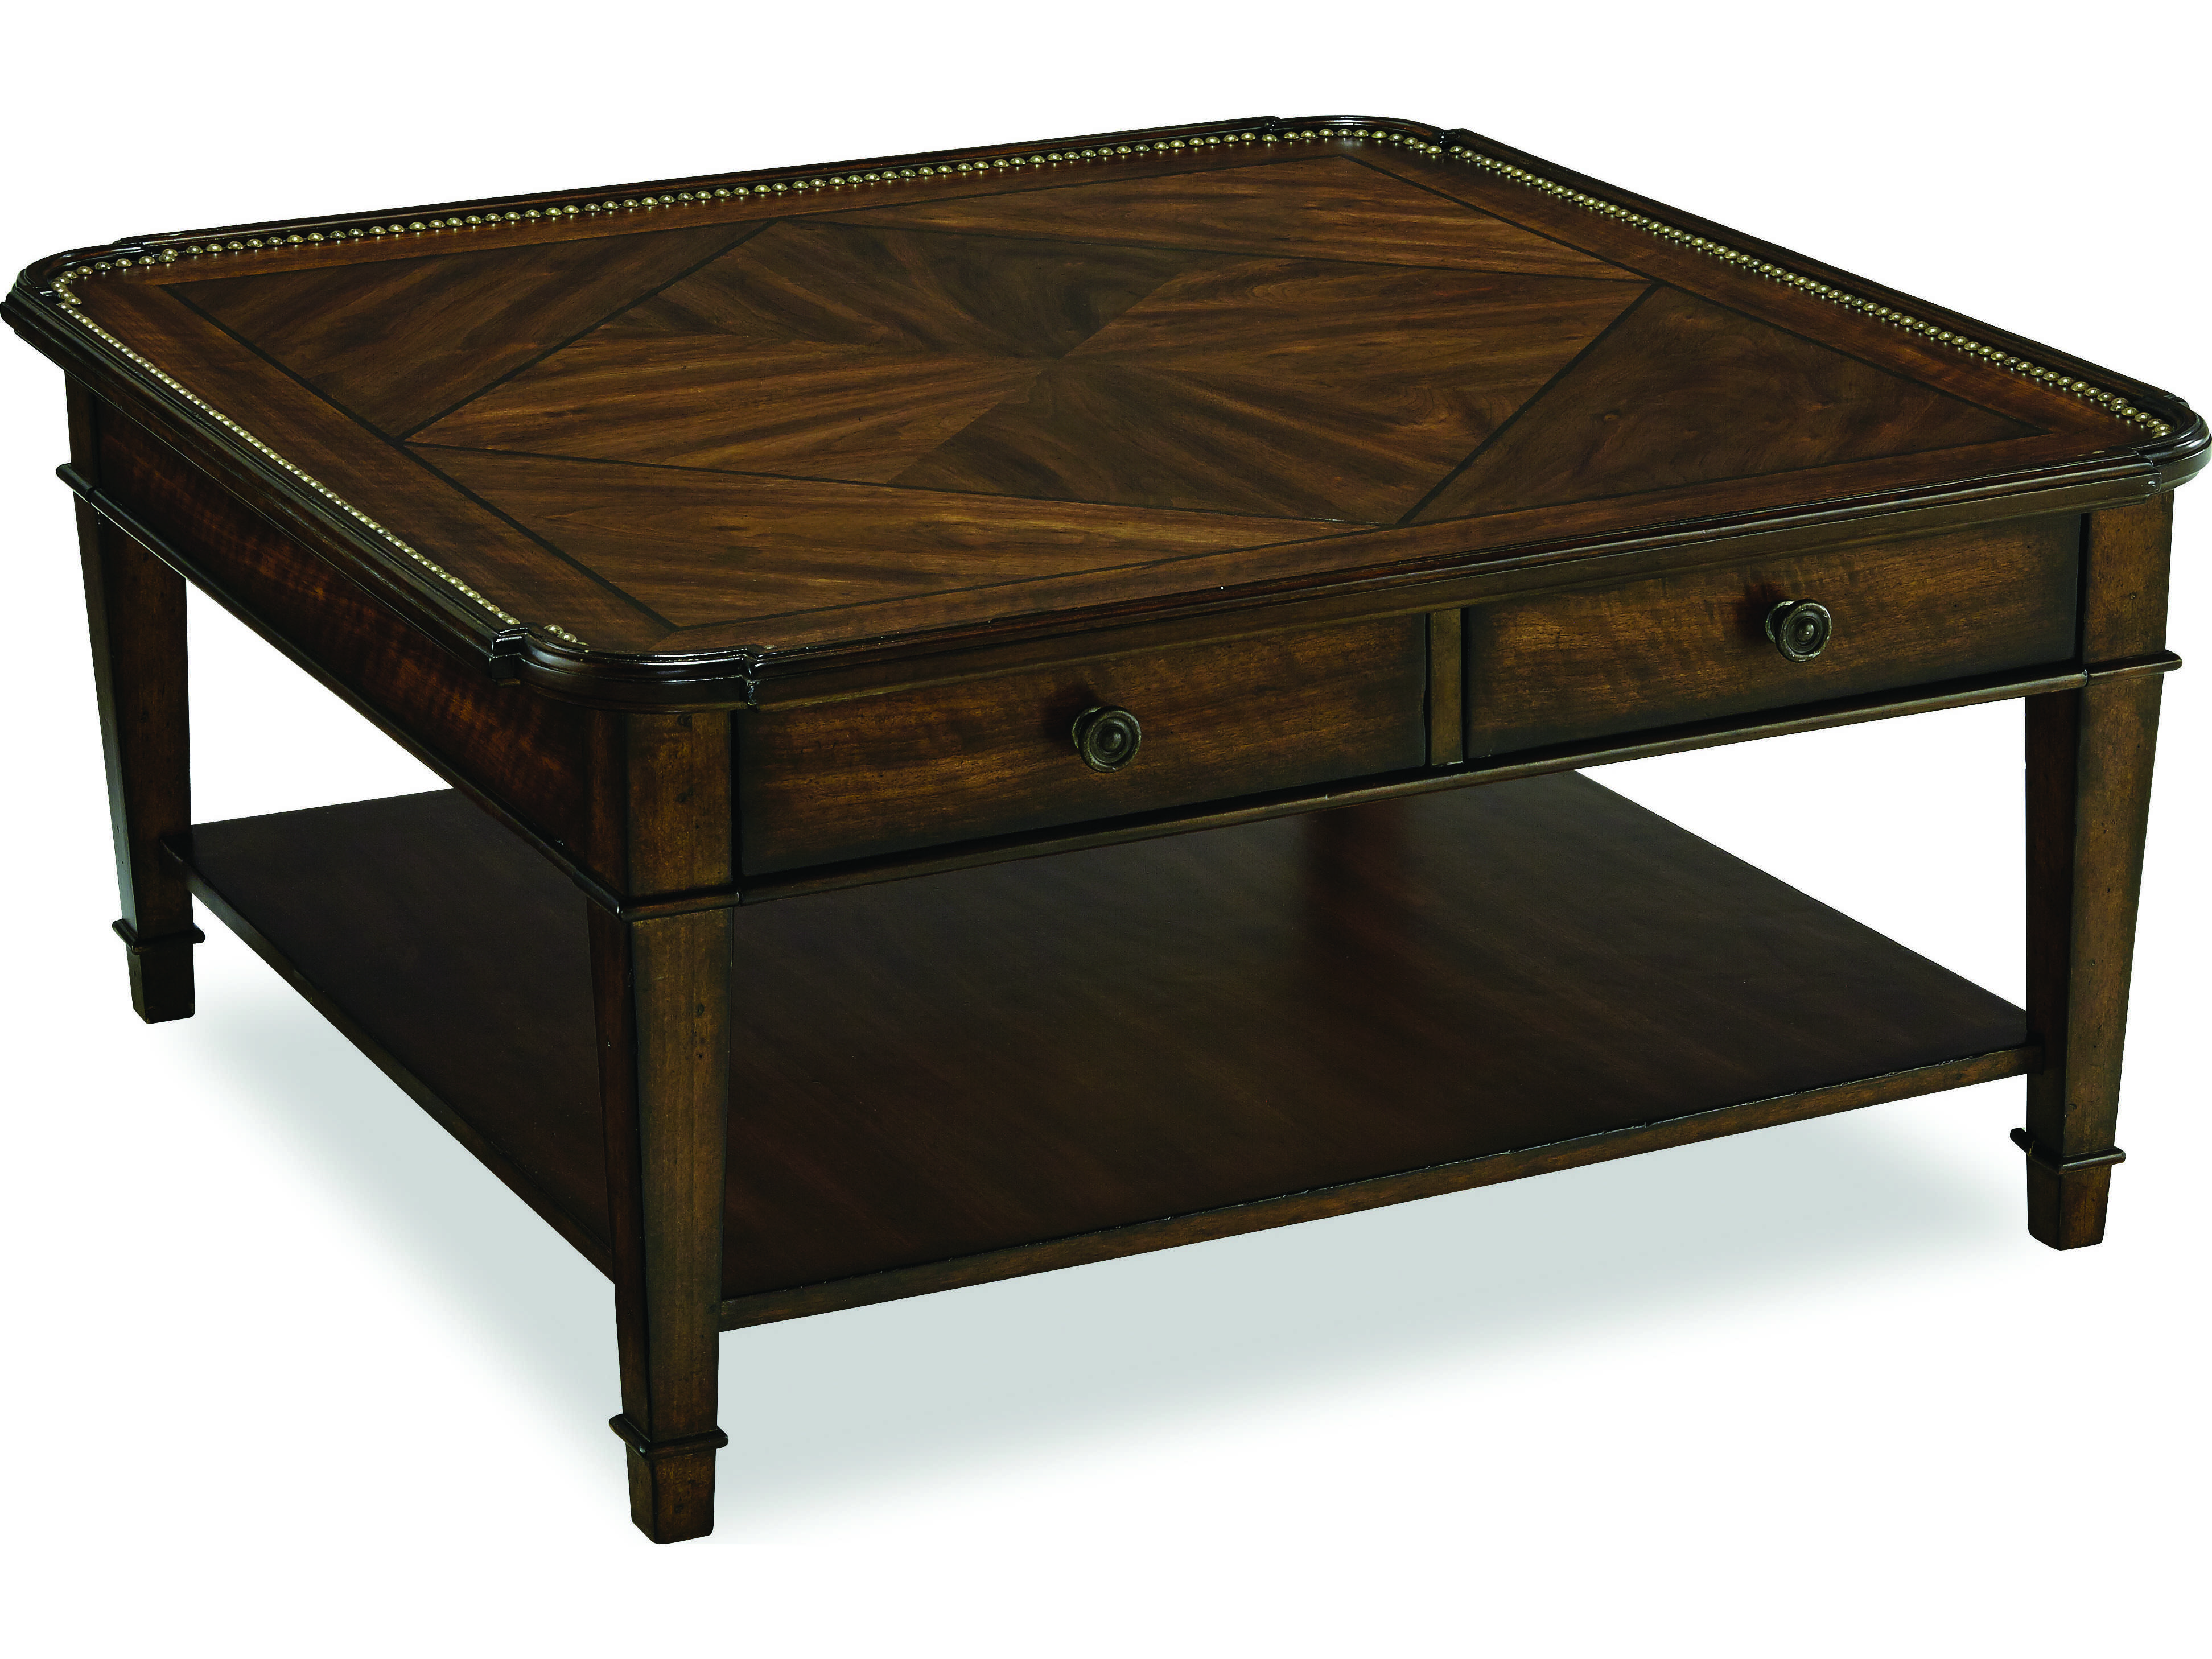 Art Furniture Chateaux Walnut 40 39 39 Wide Square Cocktail Table At2133101812